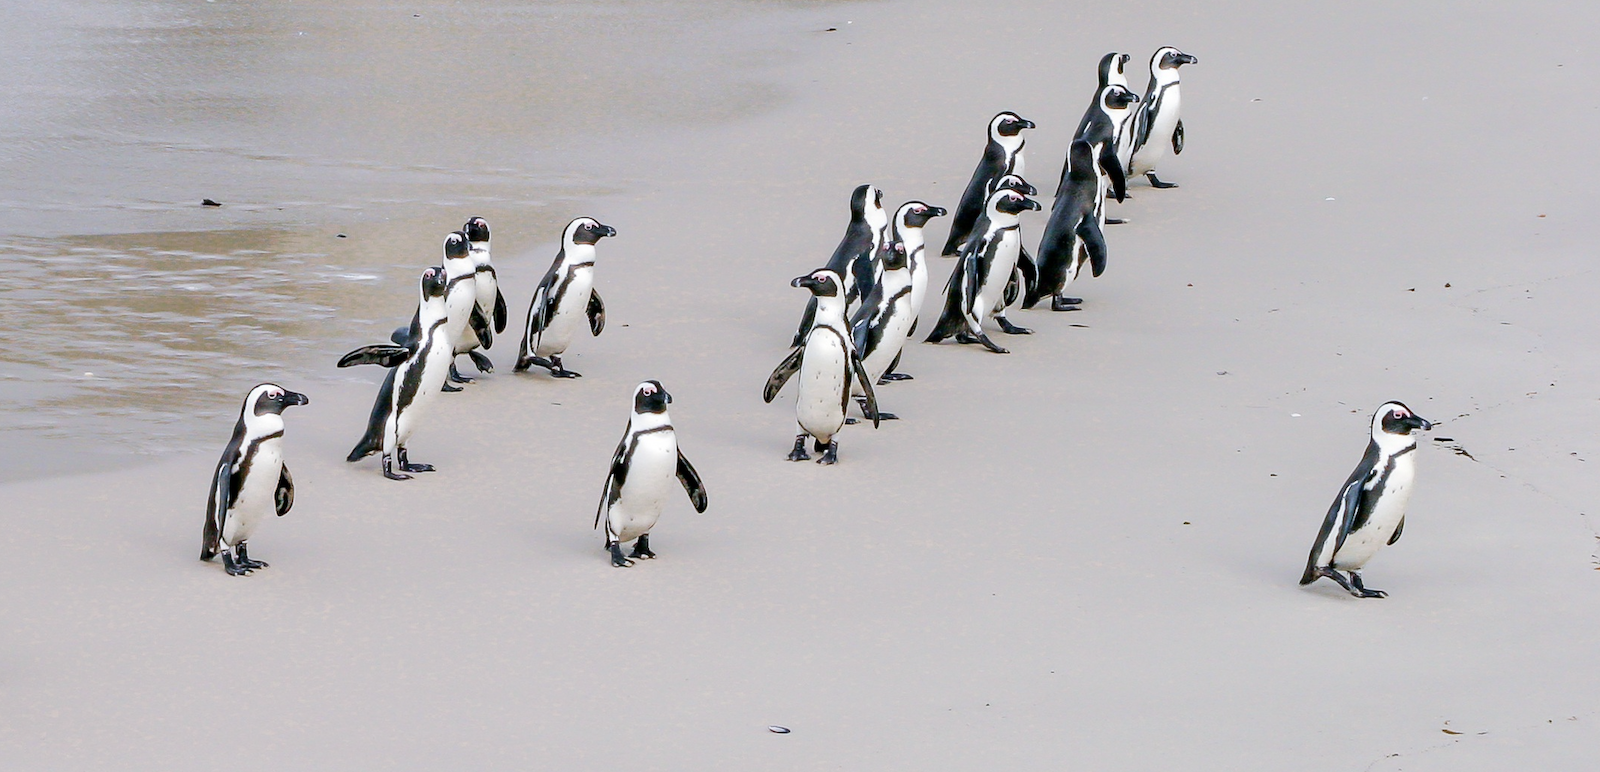 One penguin leading a group of other penguins on the beach.